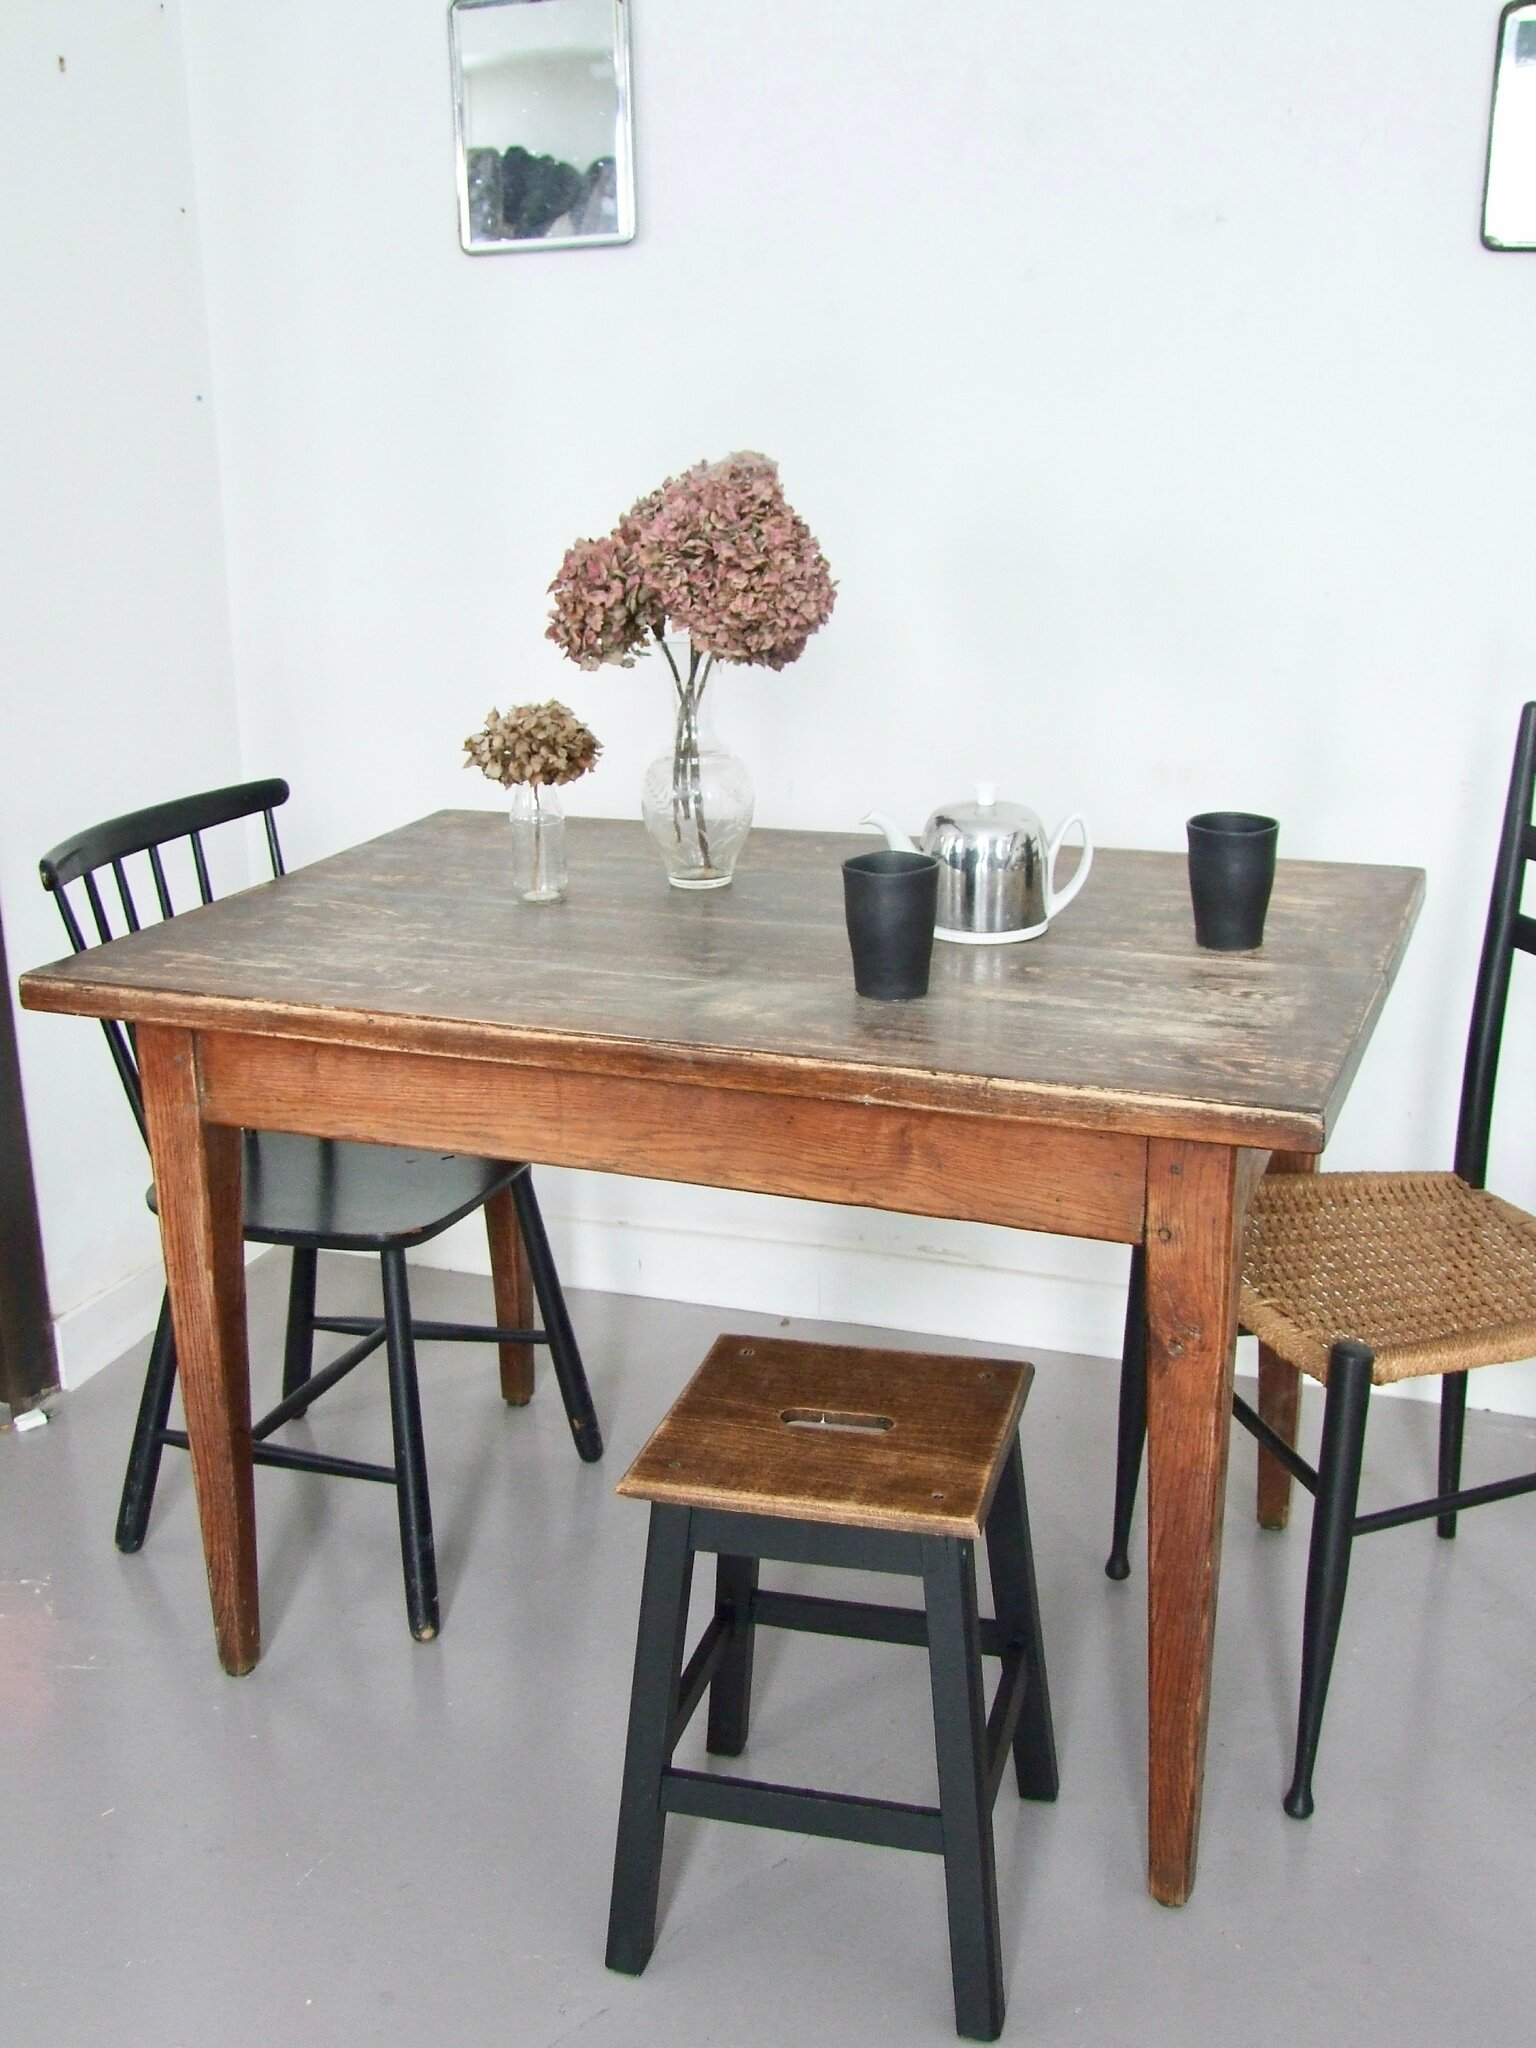 TABLE ANCIENNE BOIS MASSIF Cosy